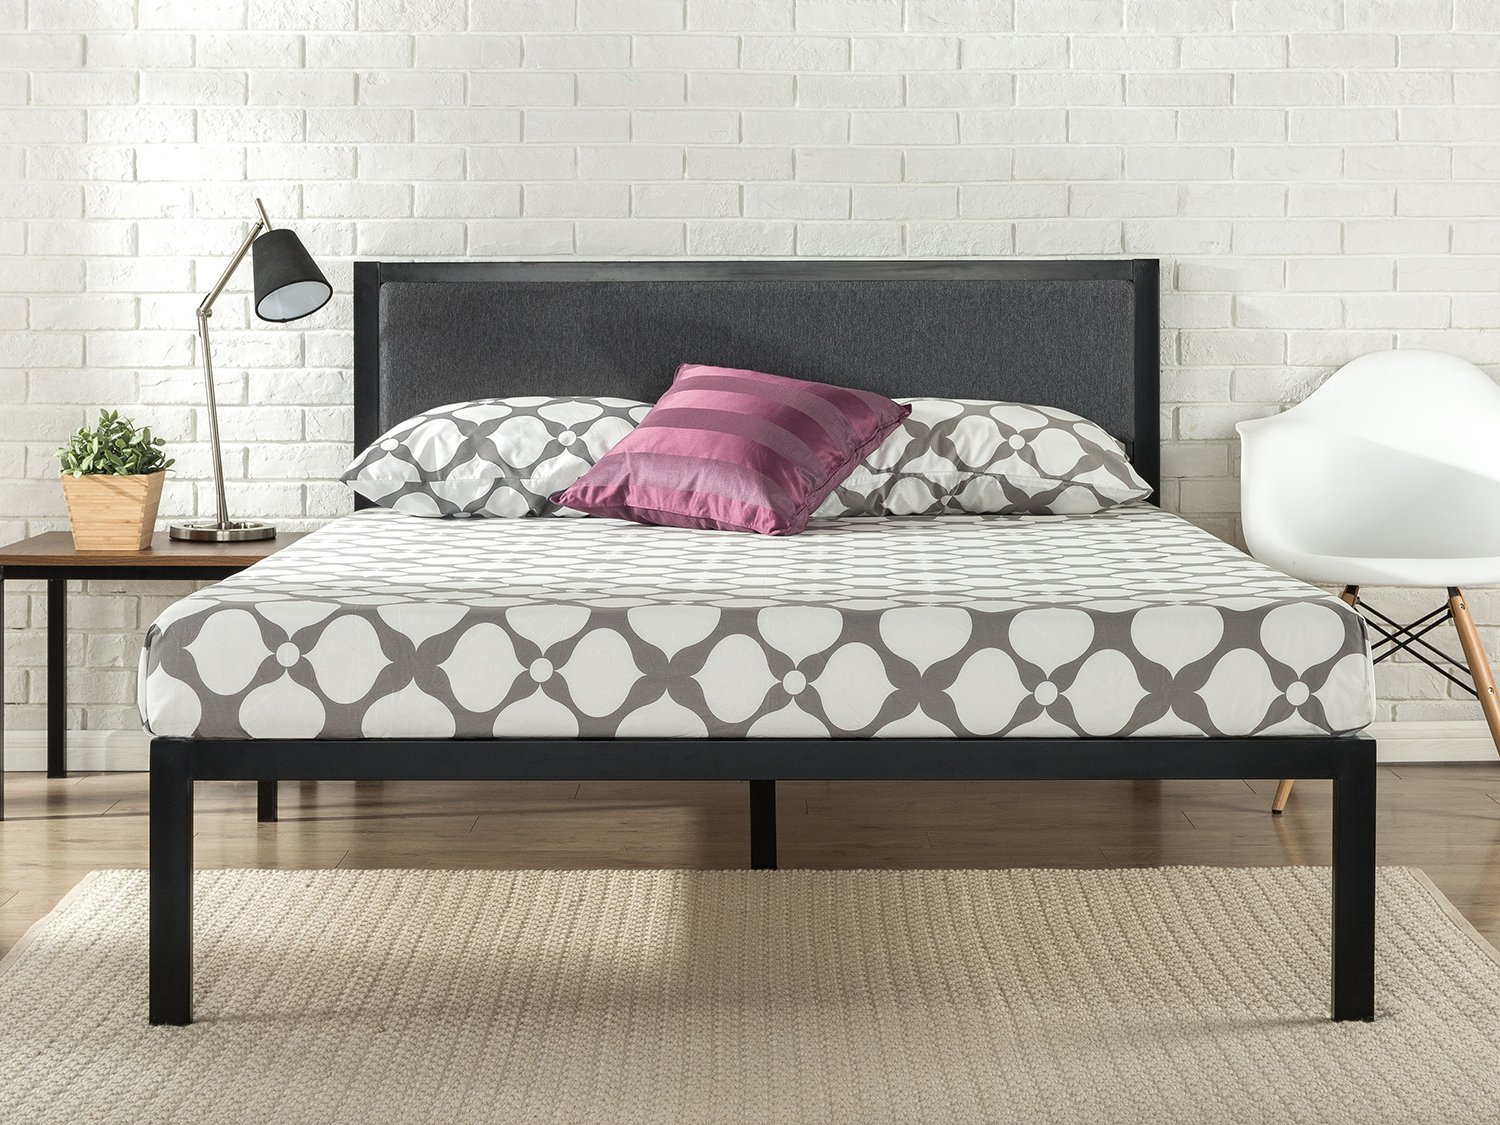 14 Inch Platform Metal Bed Frame With Upholstered